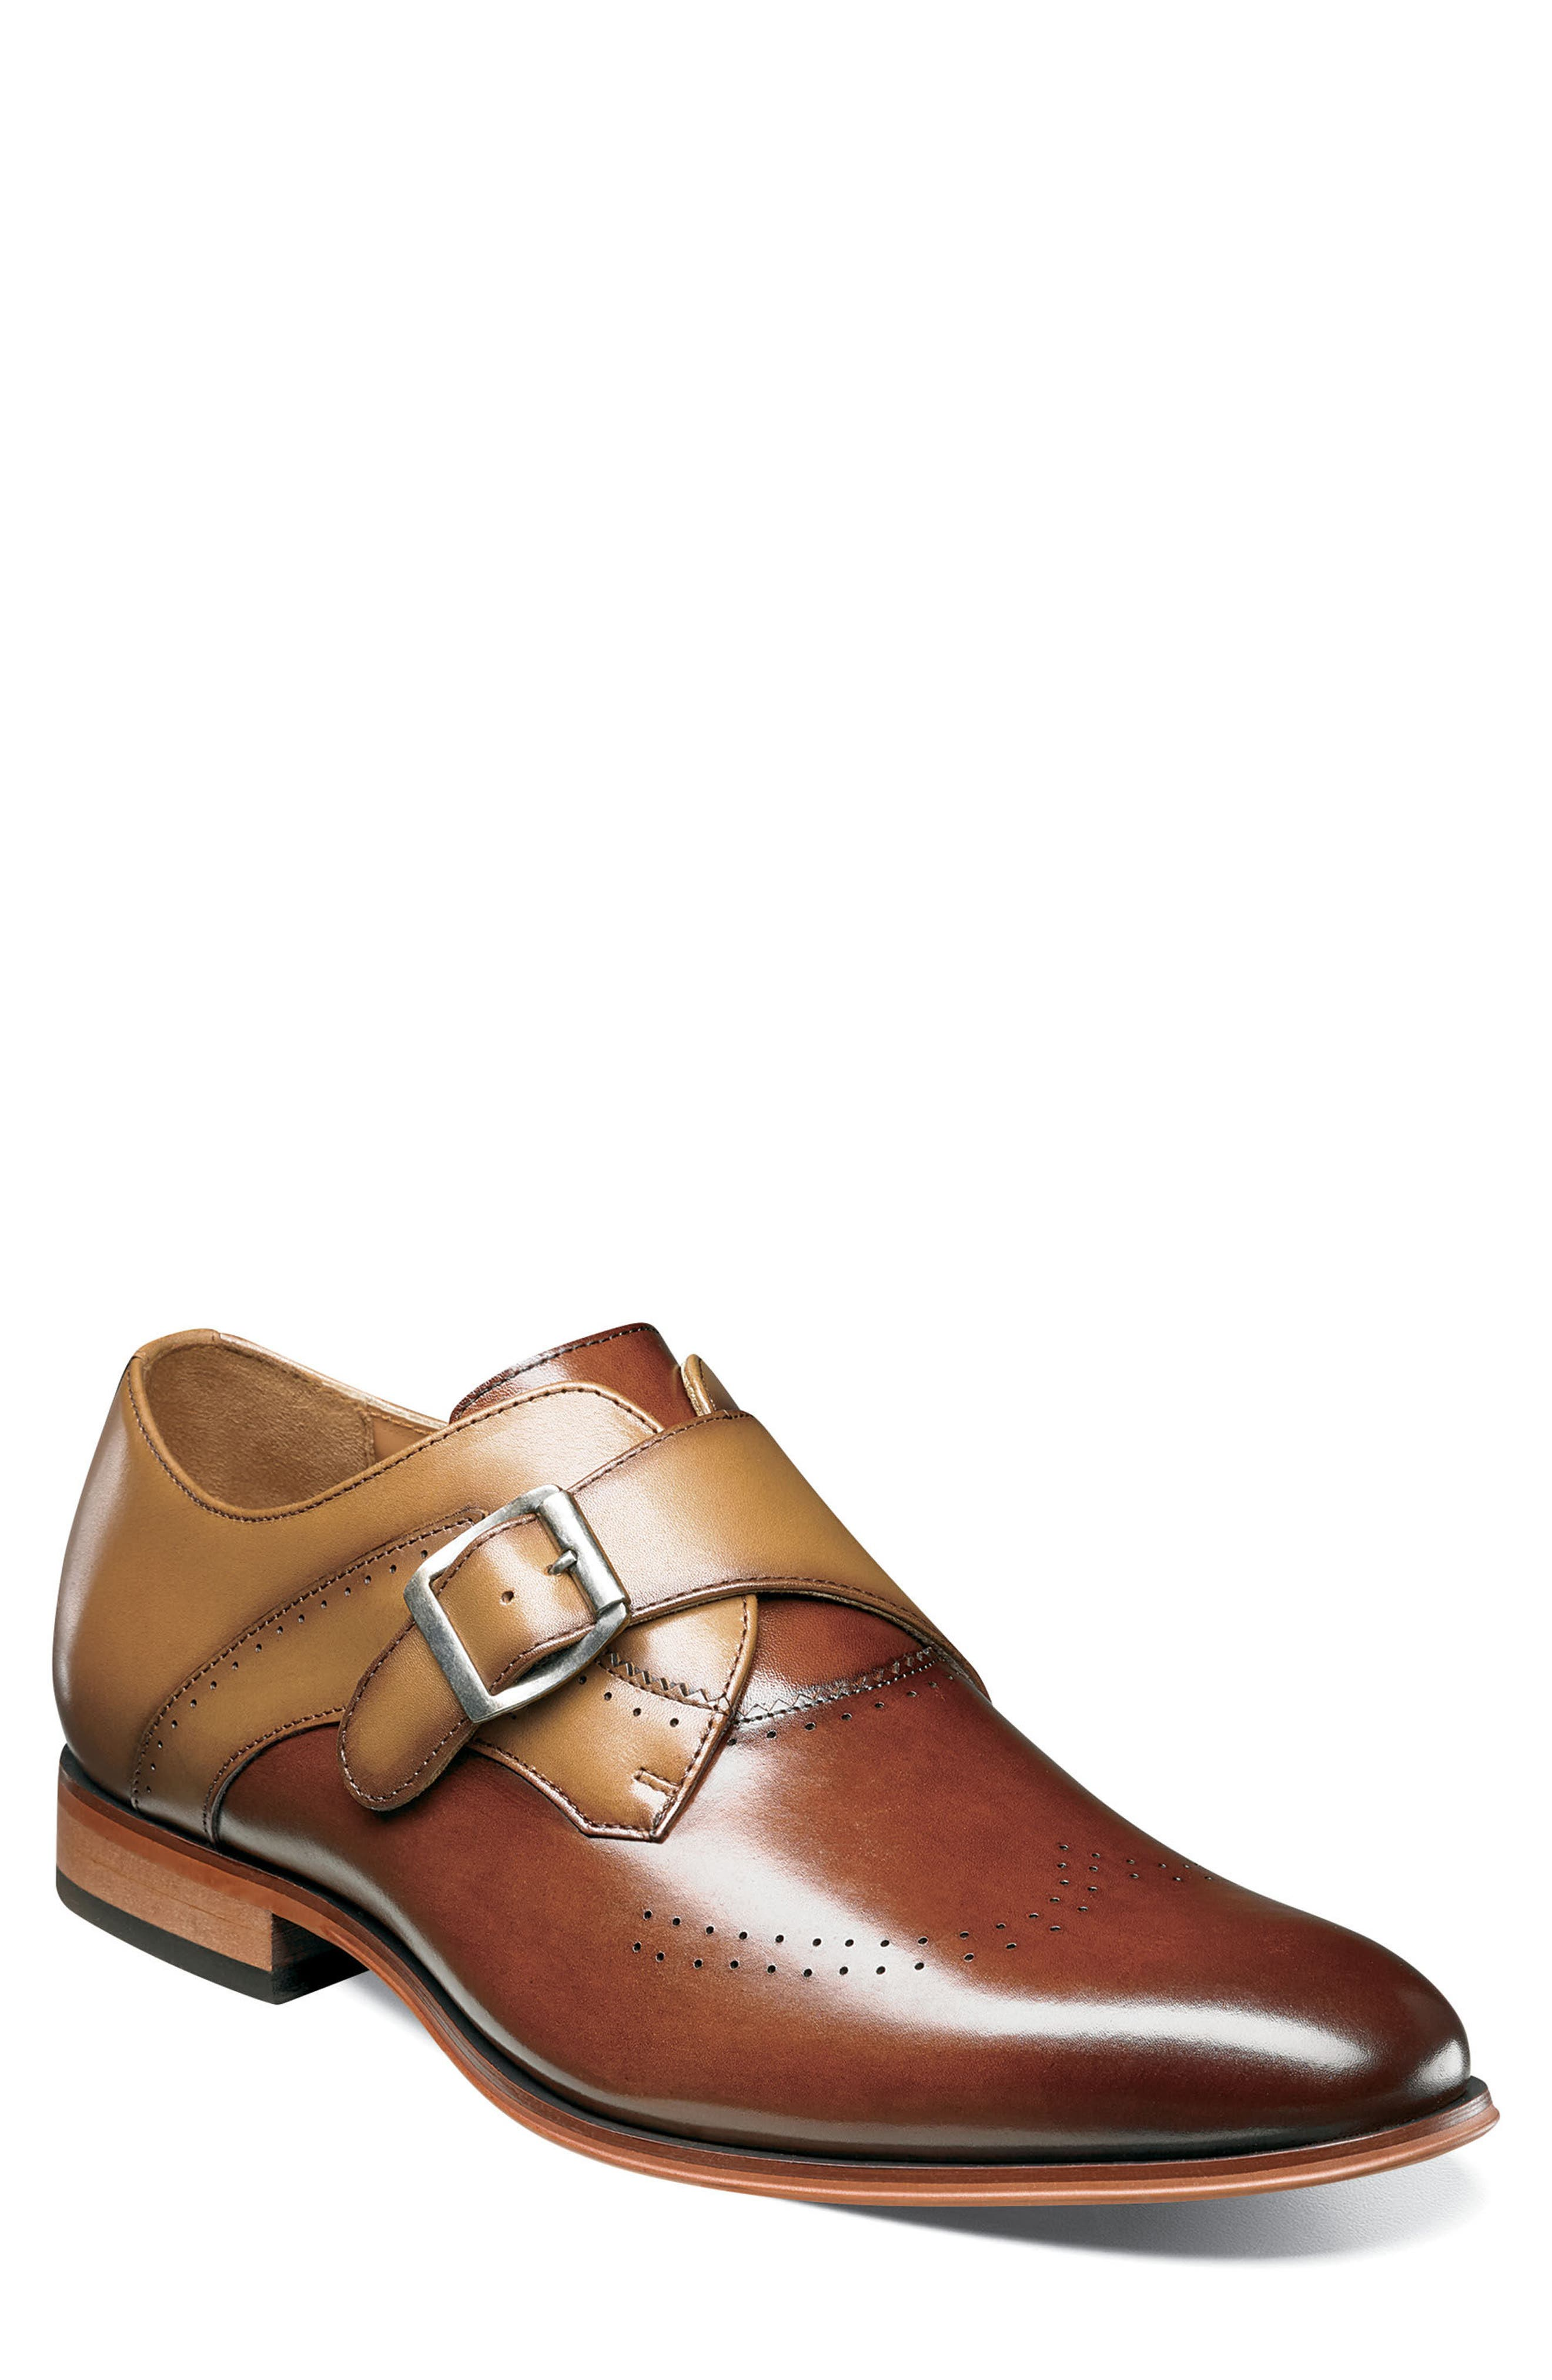 STACY ADAMS, Saxton Perforated Monk Strap Shoe, Main thumbnail 1, color, 201